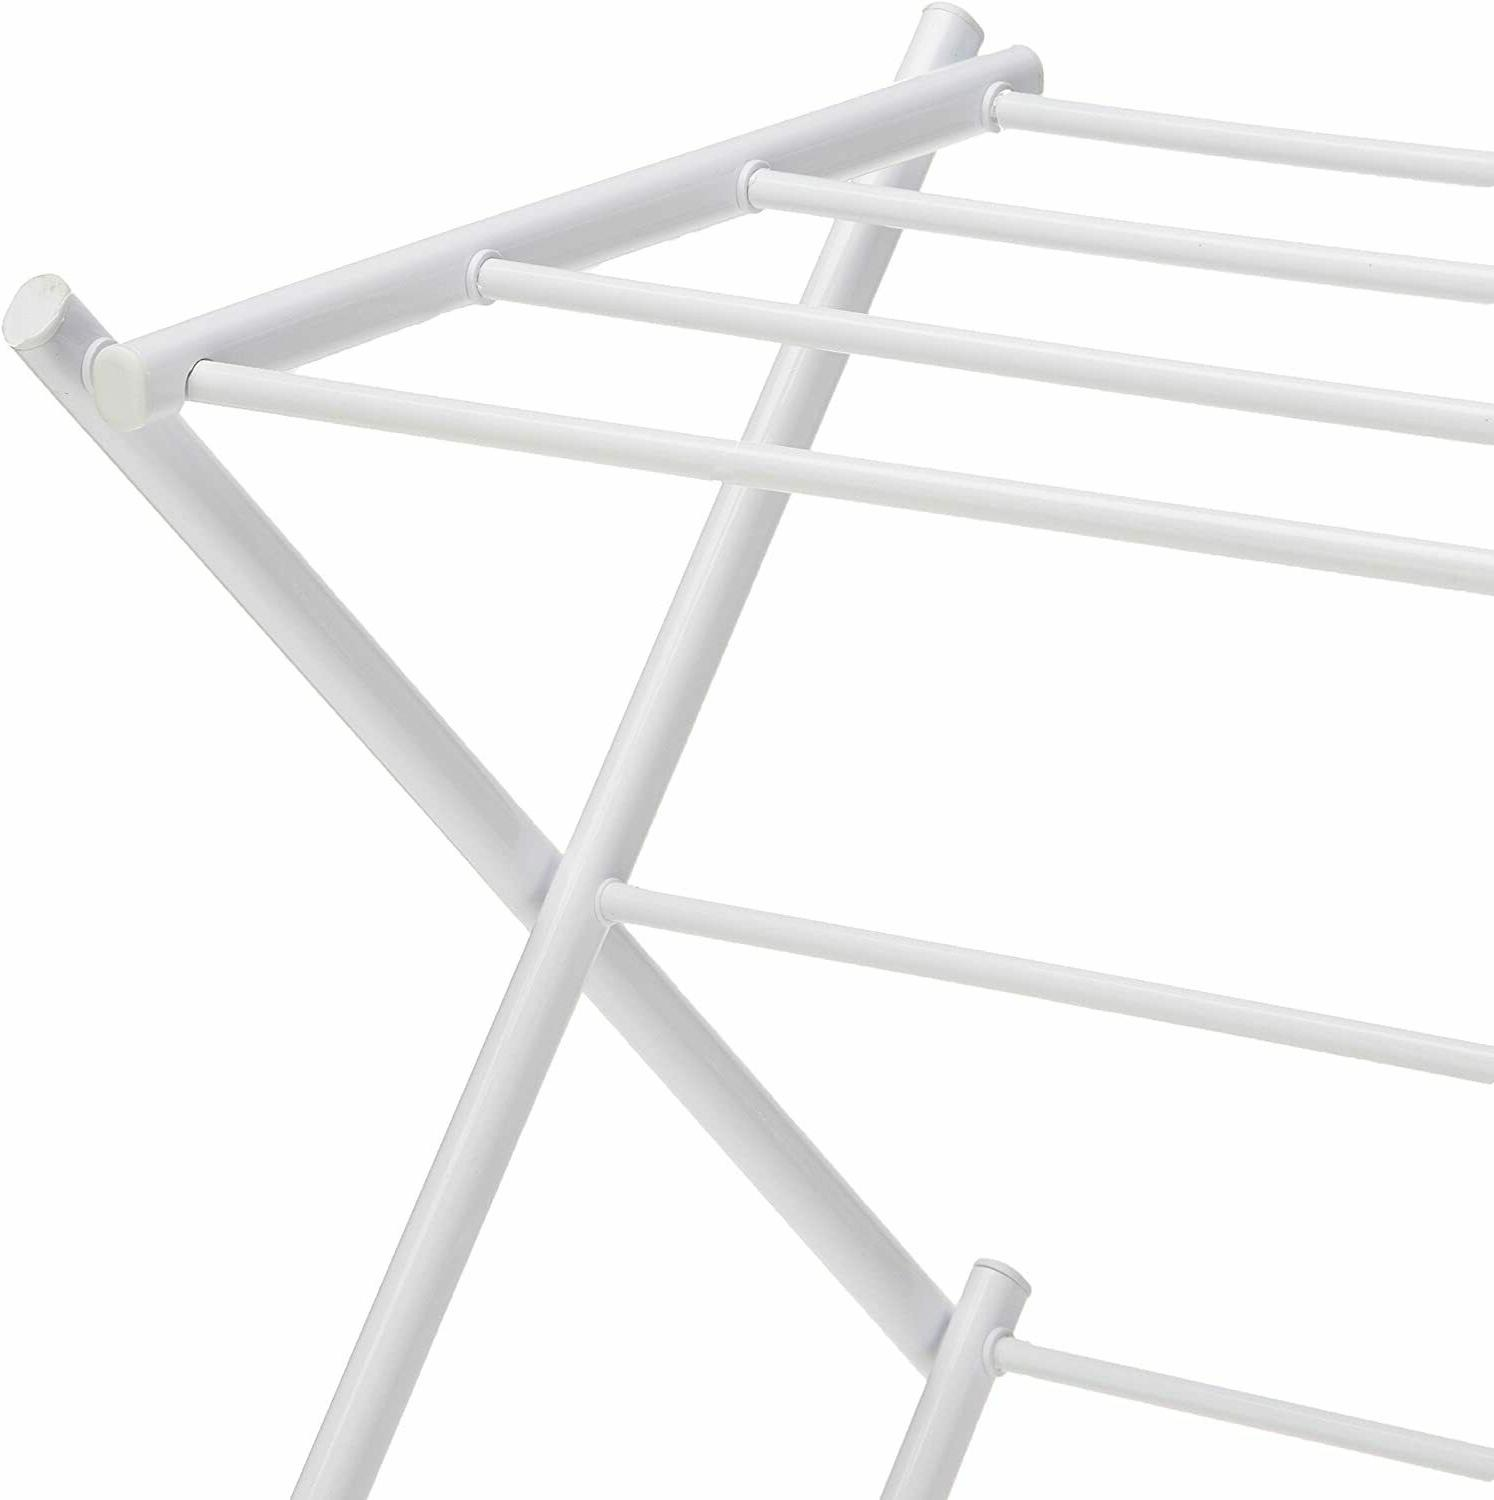 White Steel Collapsible Drying Organizer